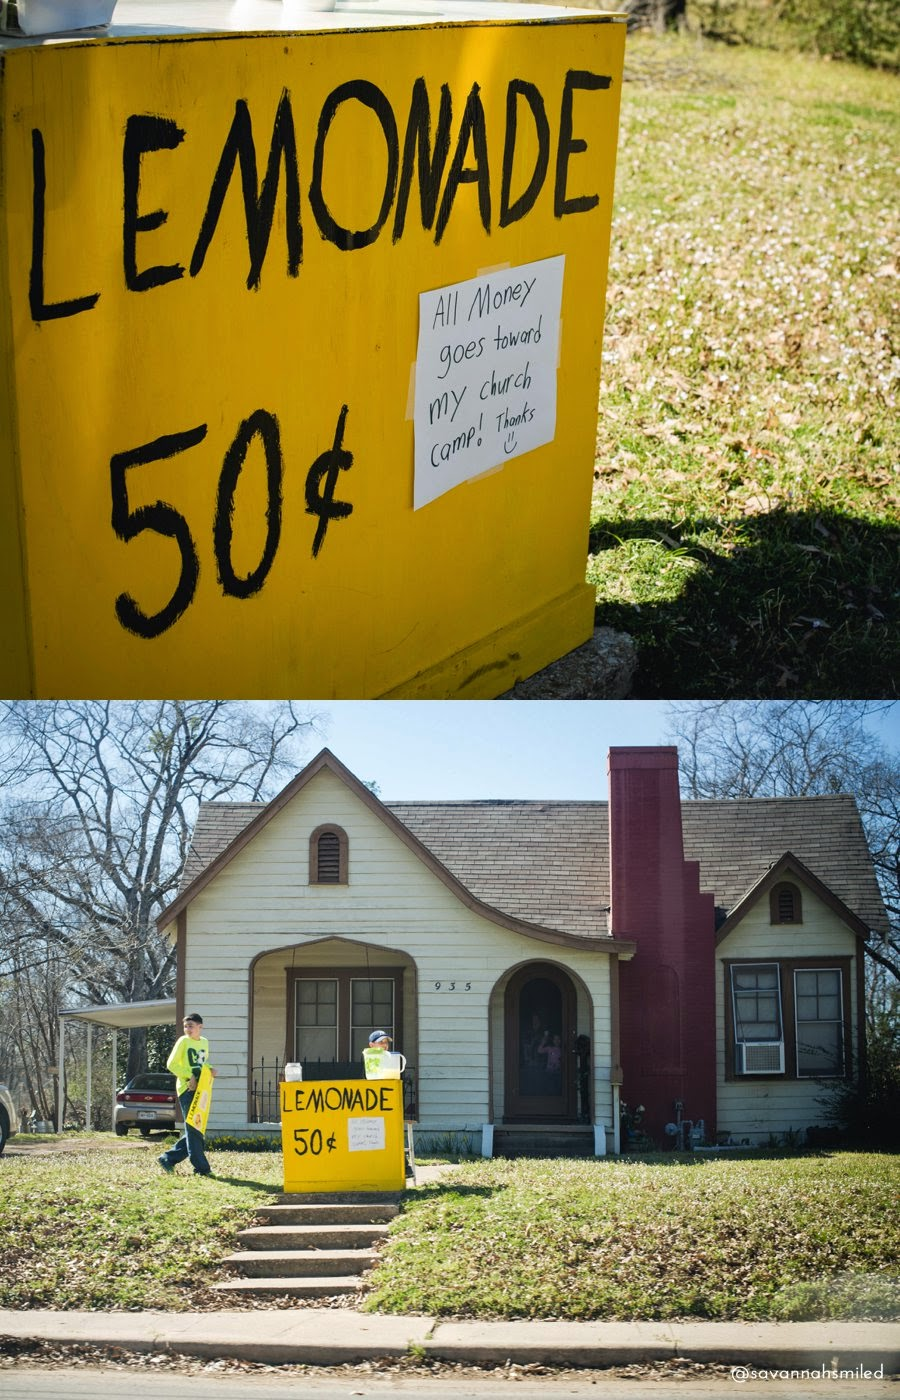 sulphur-springs-texas-lemonade-stand-photo.jpg